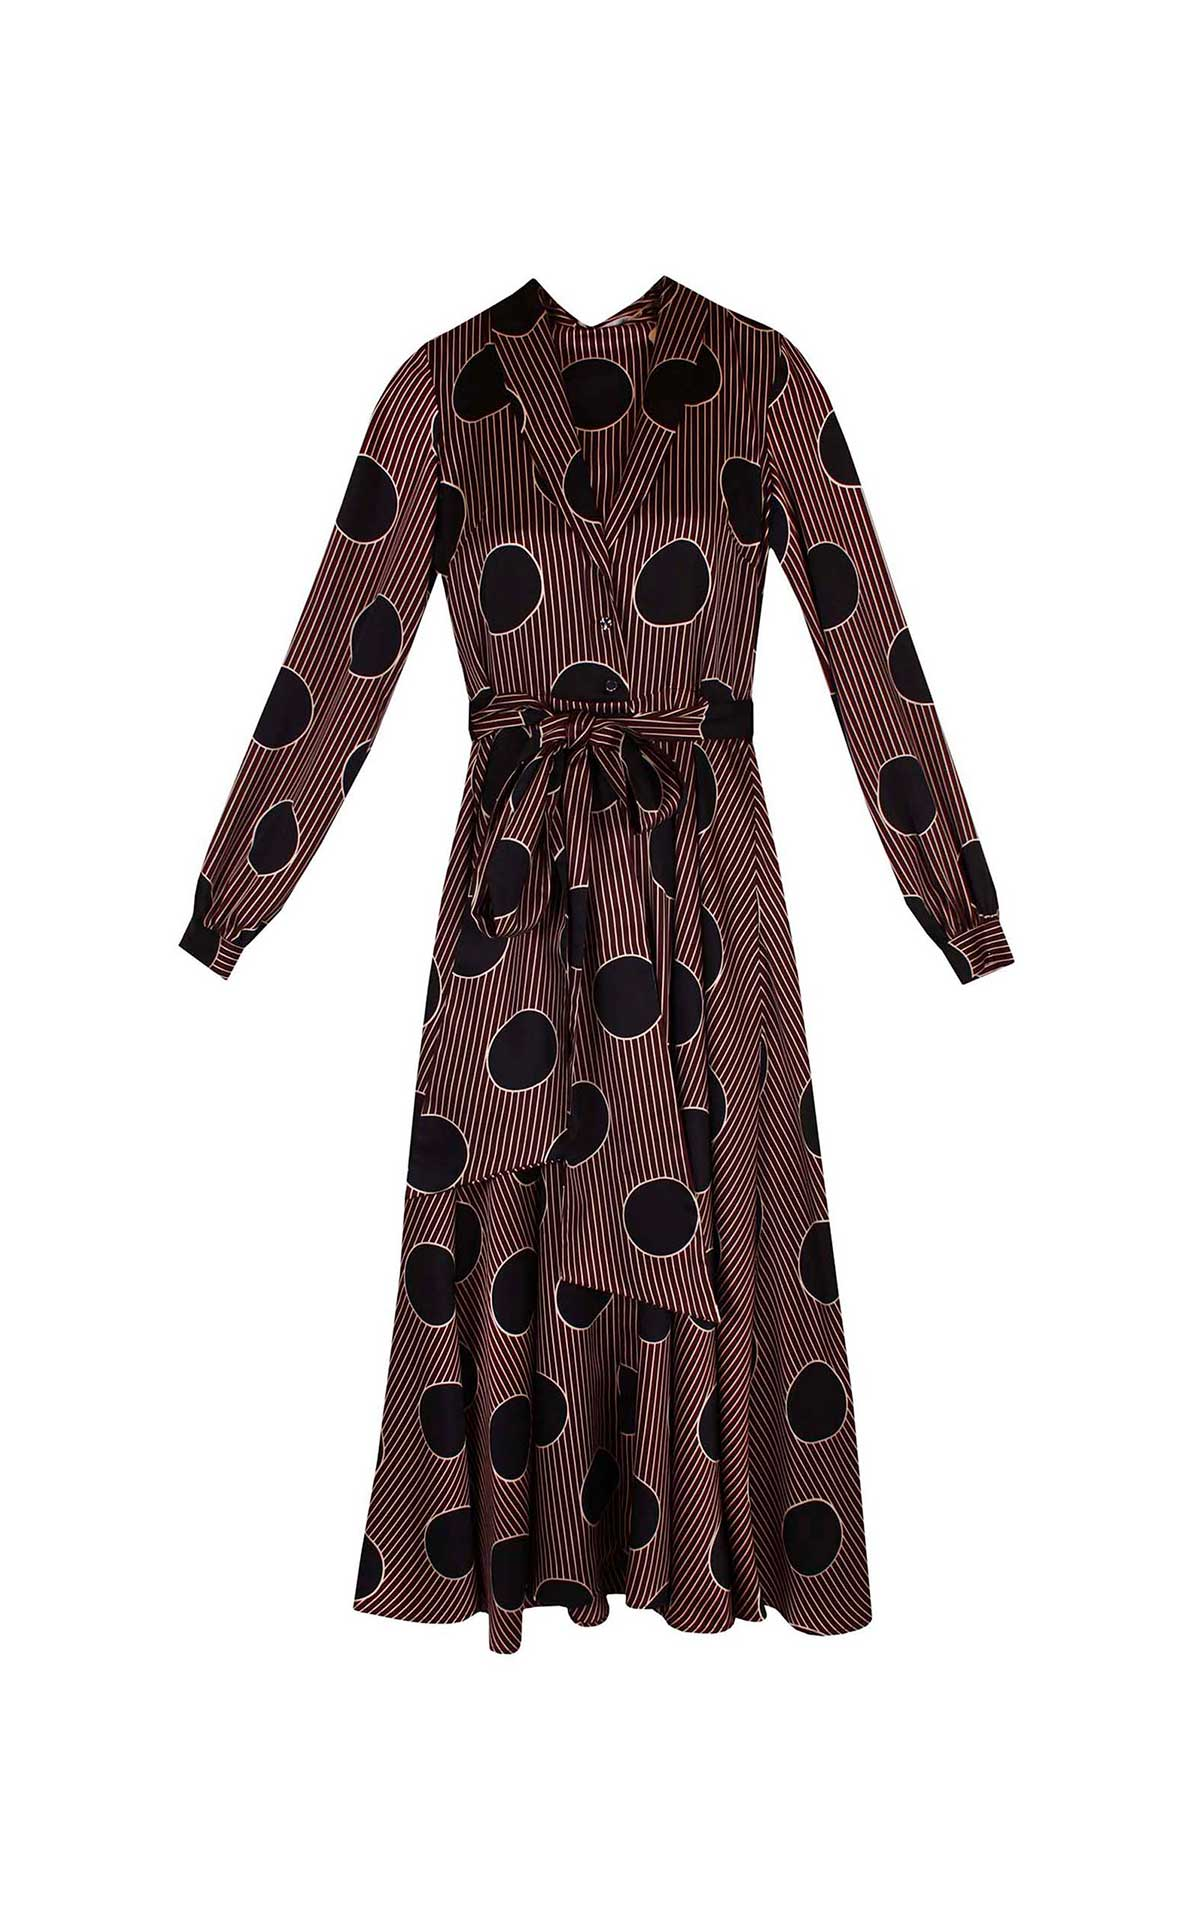 Black and brown dot print dress Dolores Promesas